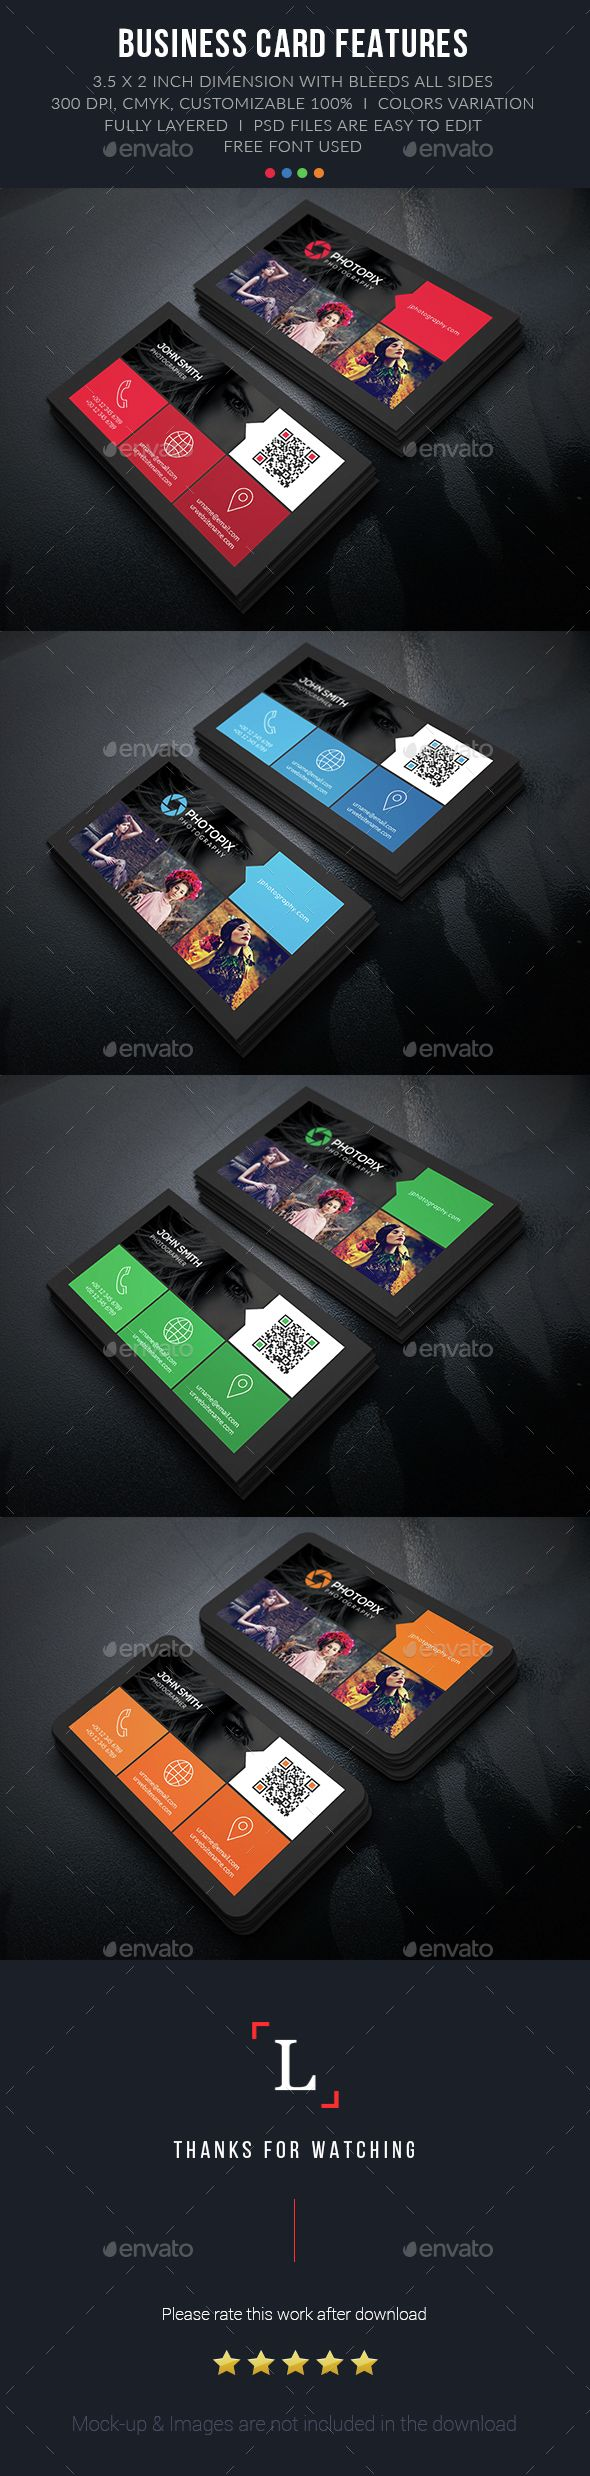 Color Photography Business Card — Photoshop PSD #black #green • Available here → https://graphicriver.net/item/color-photography-business-card/15217082?ref=pxcr